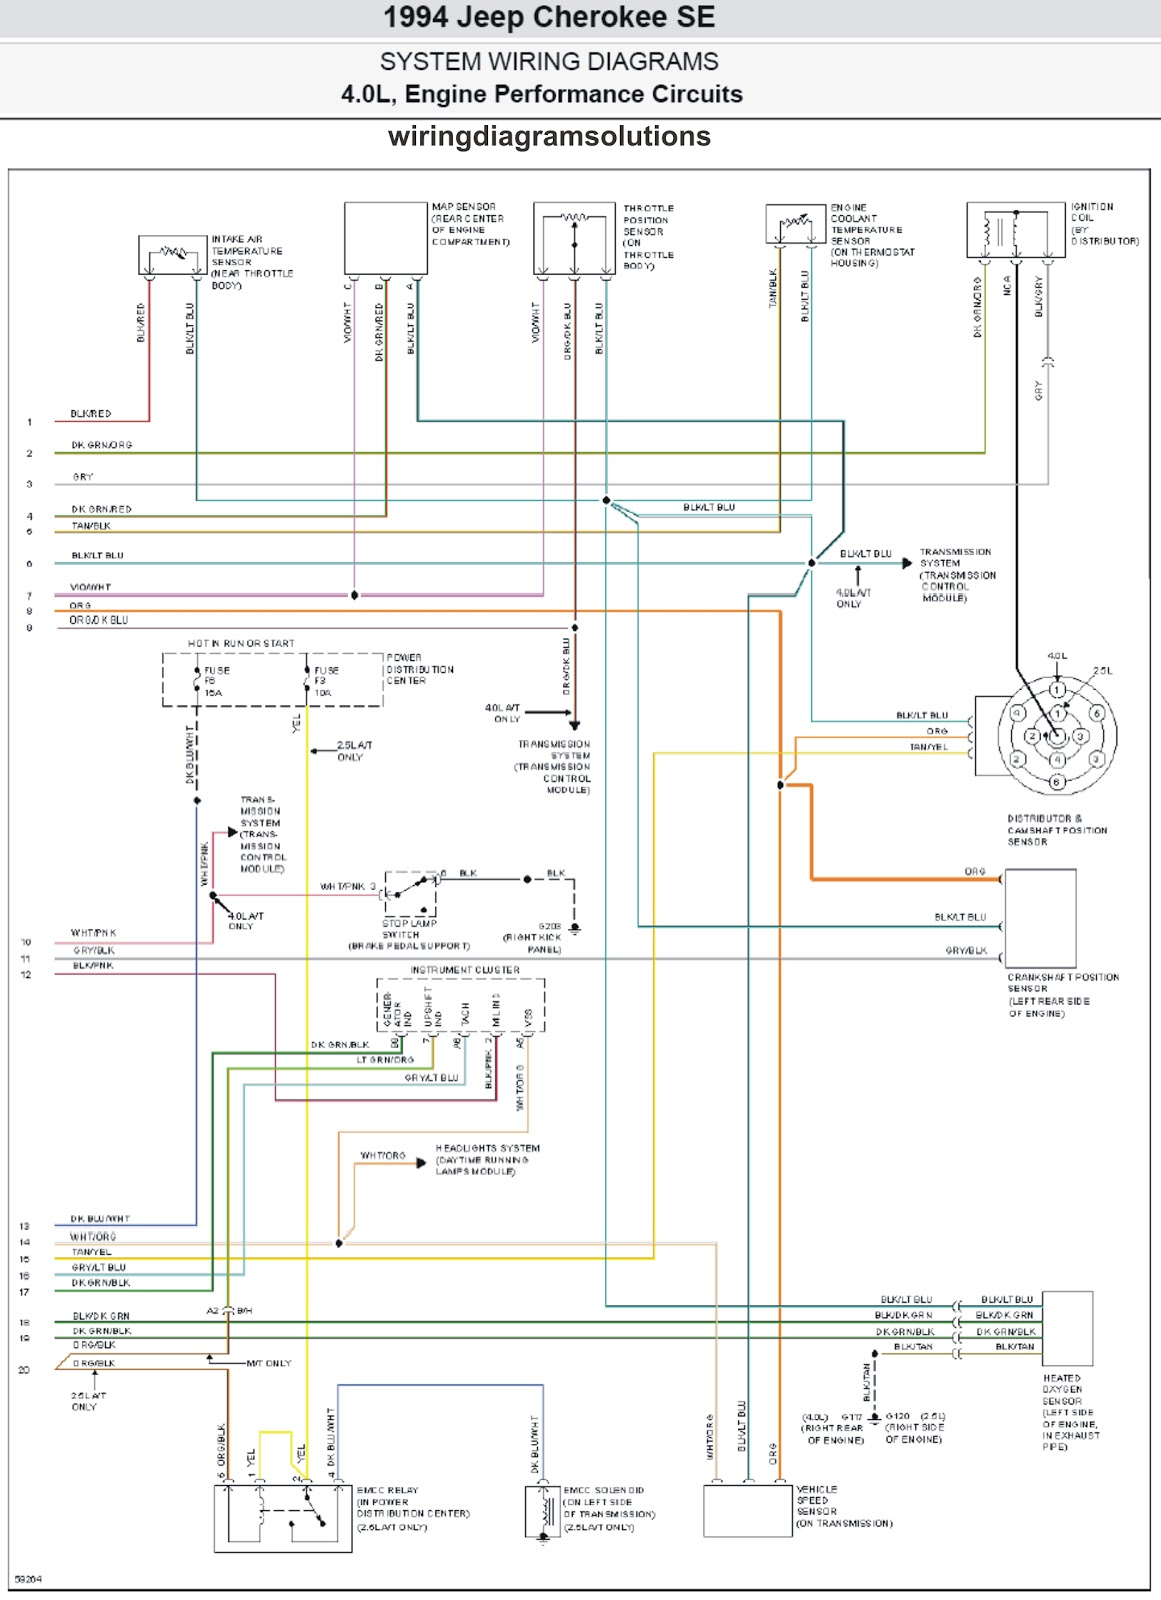 88 Jeep Cherokee Wiring Diagram FULL HD Version Wiring Diagram - LUNG- DIAGRAM.TACCHETTIDIFERRO.ITDiagram Database And Images